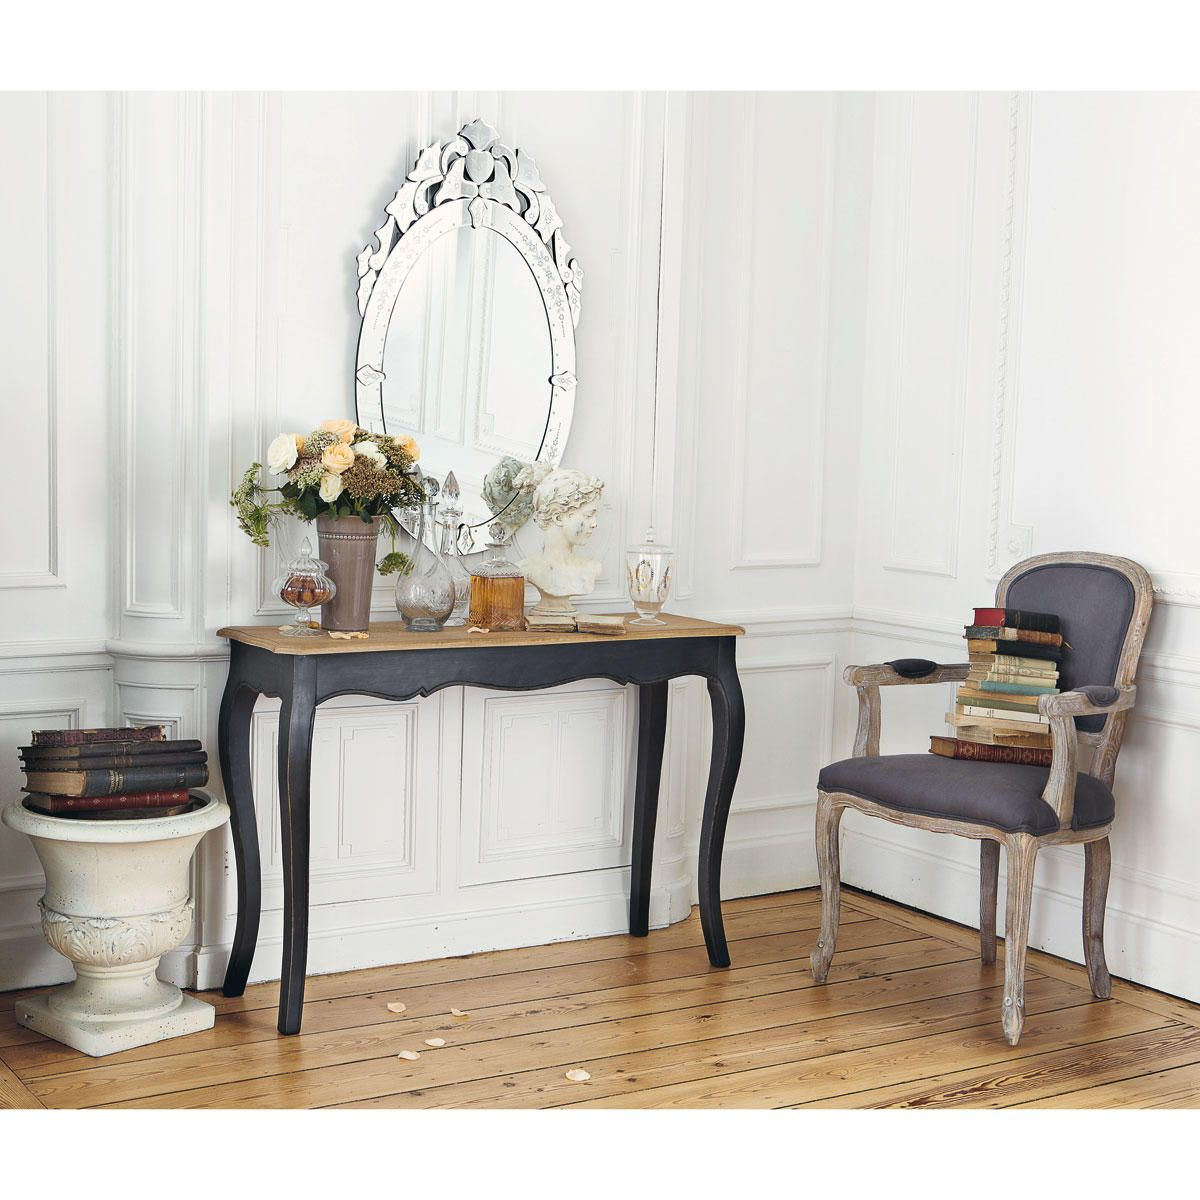 table console en manguier massif noire maison du monde decoration entree et d co int rieure. Black Bedroom Furniture Sets. Home Design Ideas